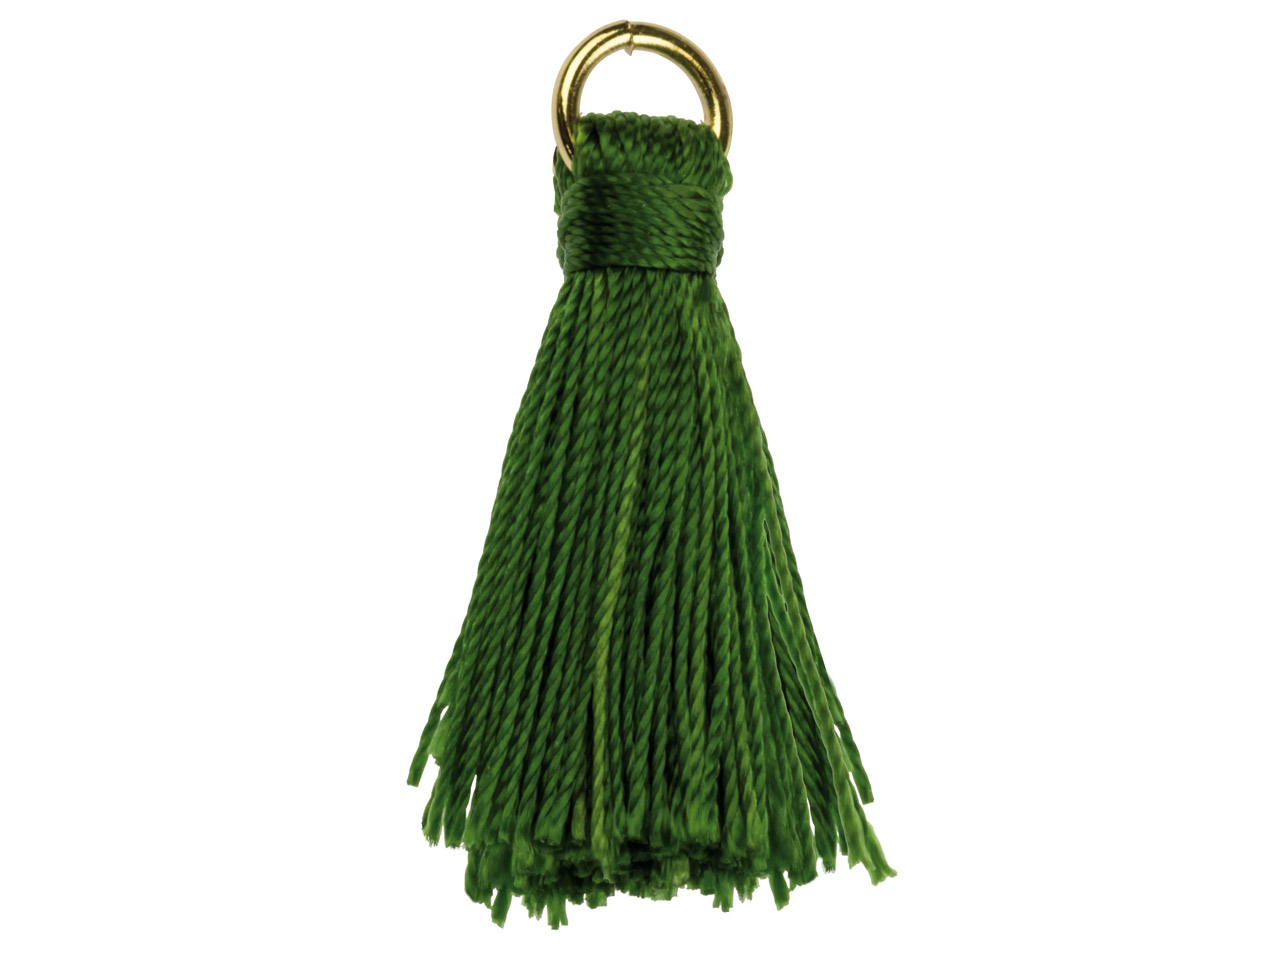 Green Nylon Tassel With Gold Plated Jump Ring Pack of 5